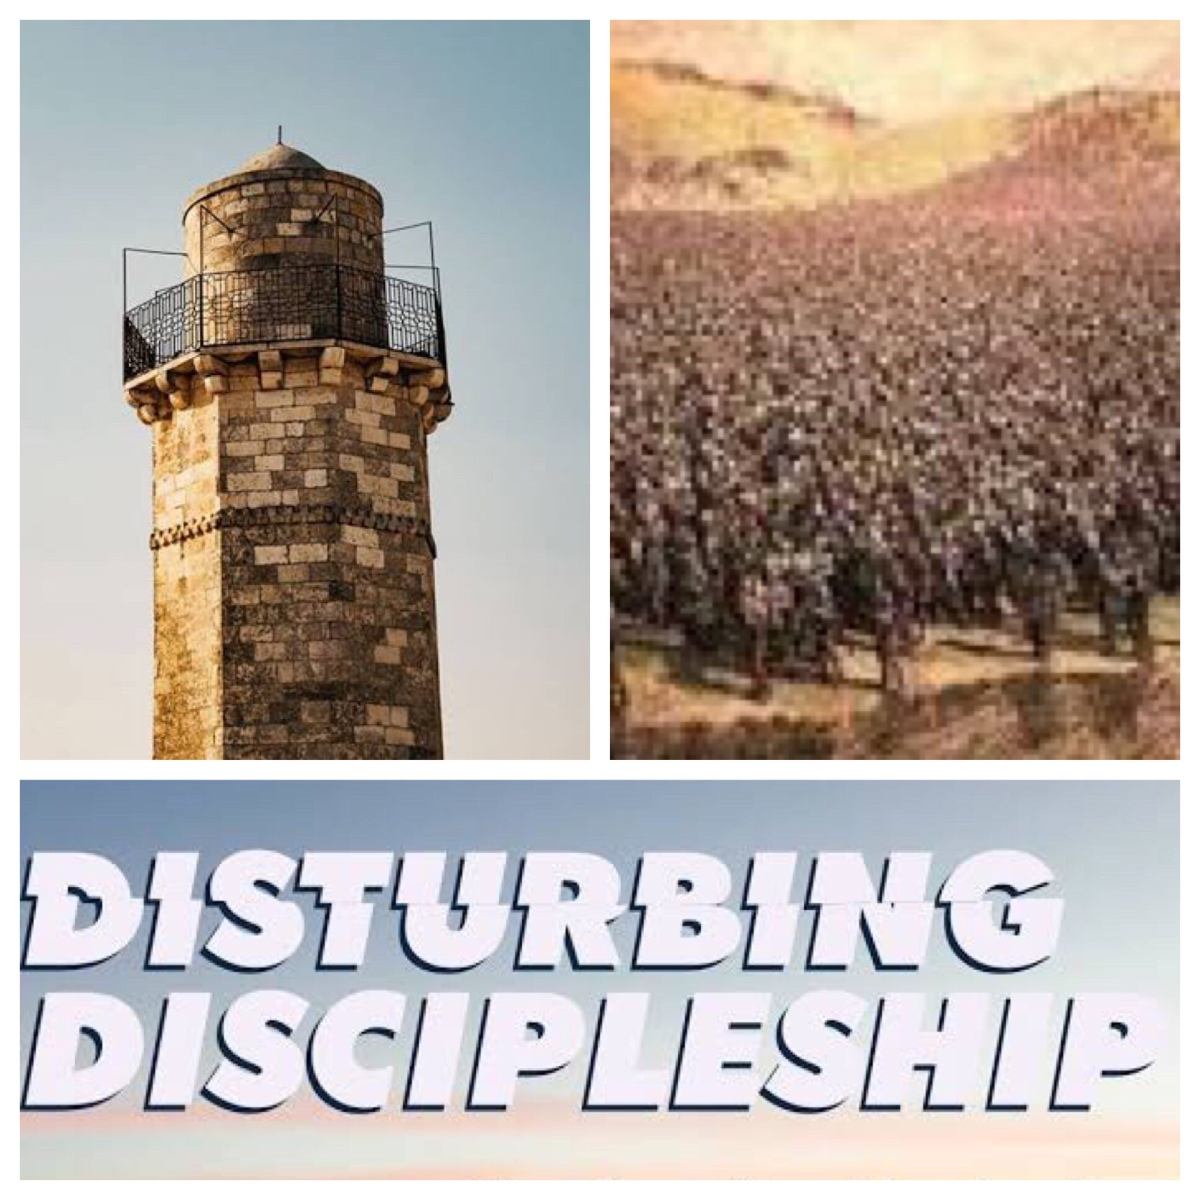 Disturbing discipleship: exploring the teachings of Jesus in Luke 14